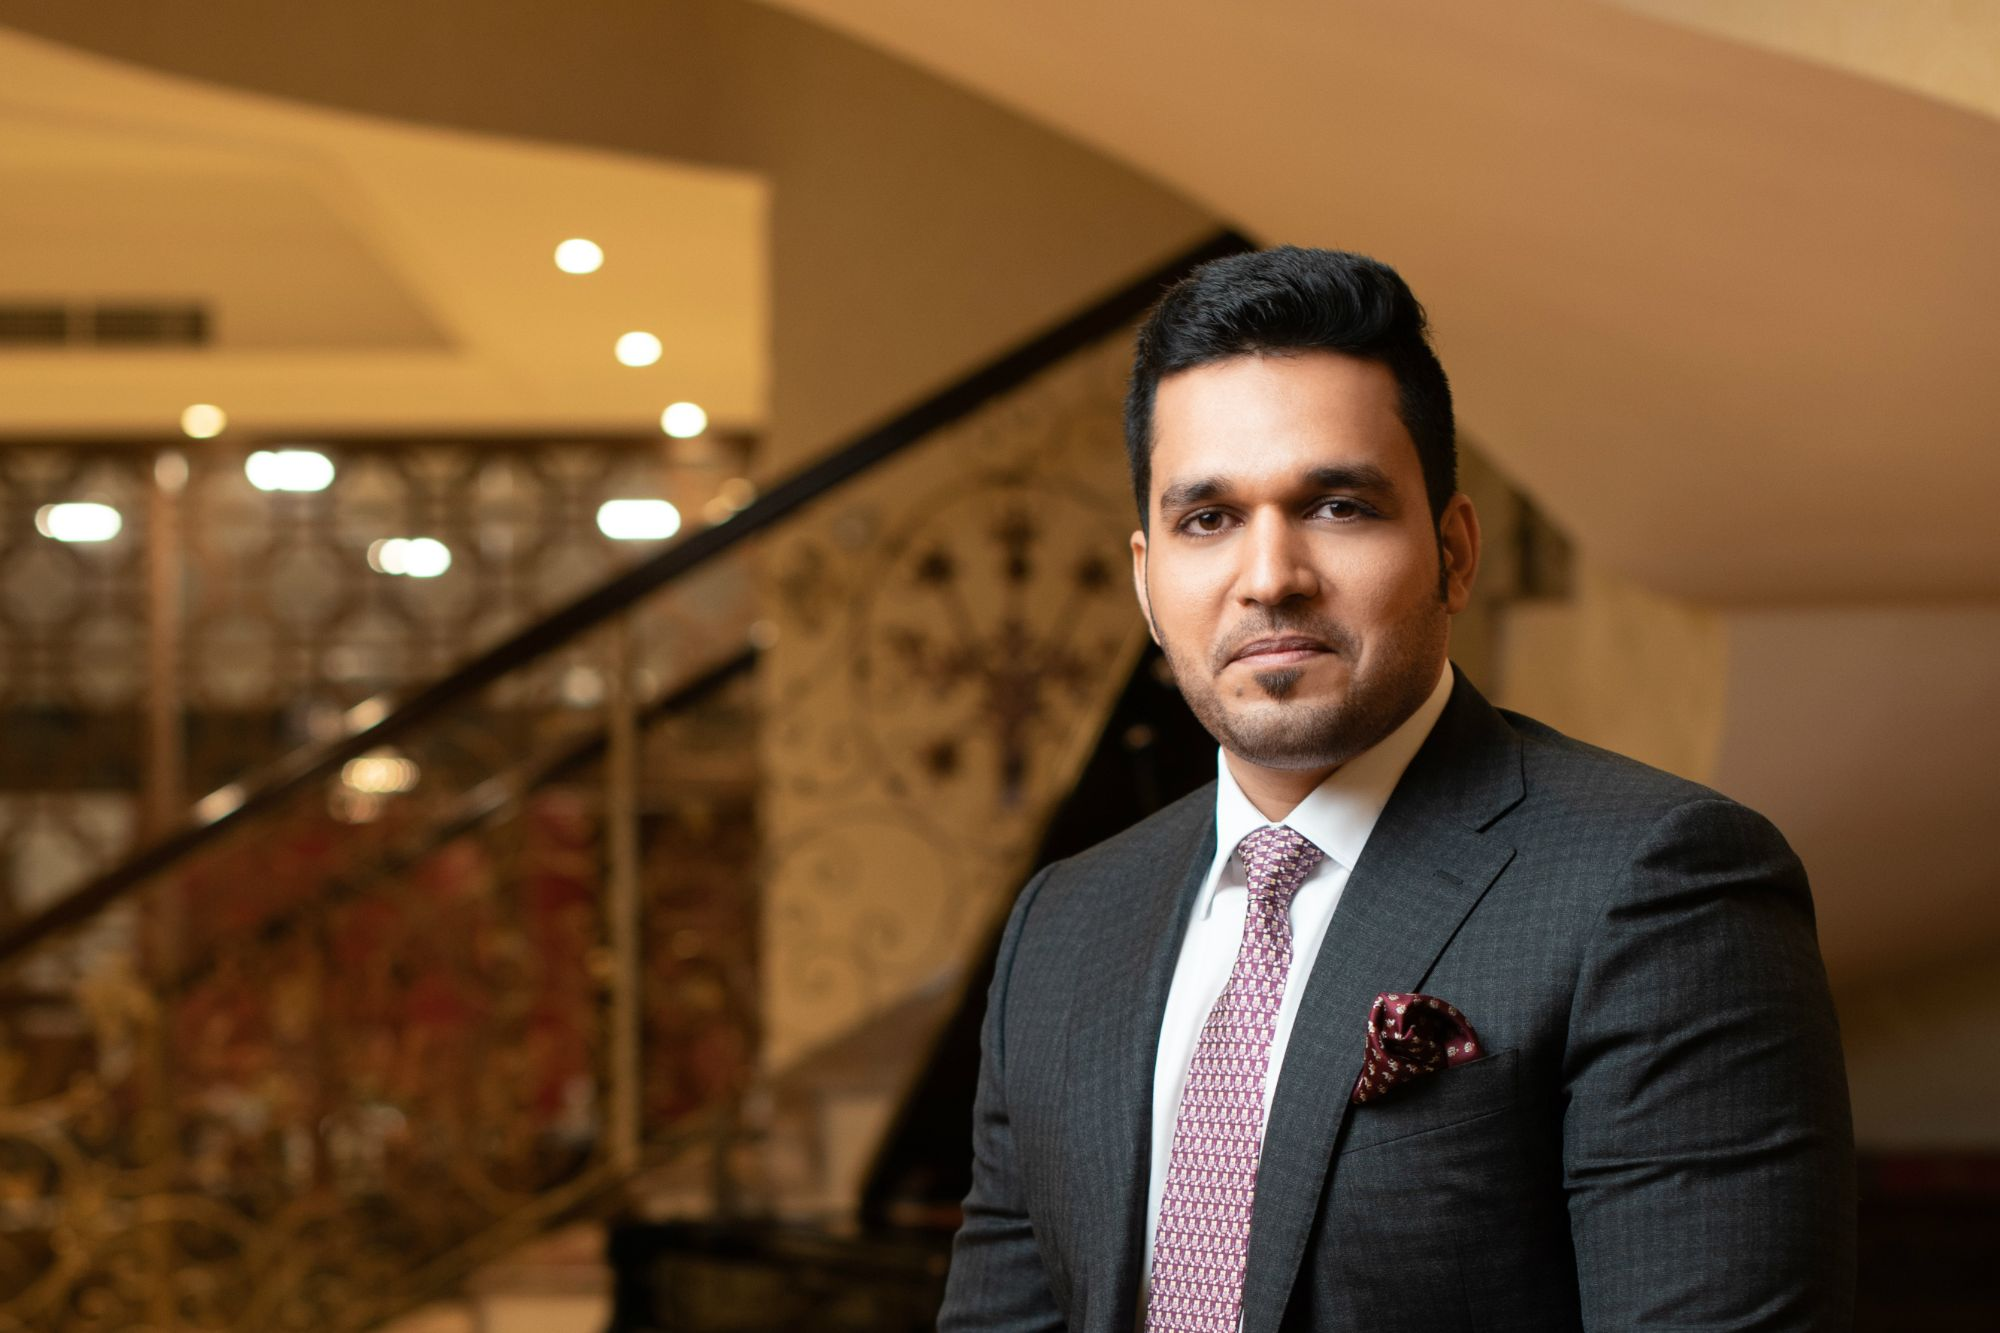 #22 Mohammed Jafer Musthafa, Founder and Managing Director, Daemaar Group